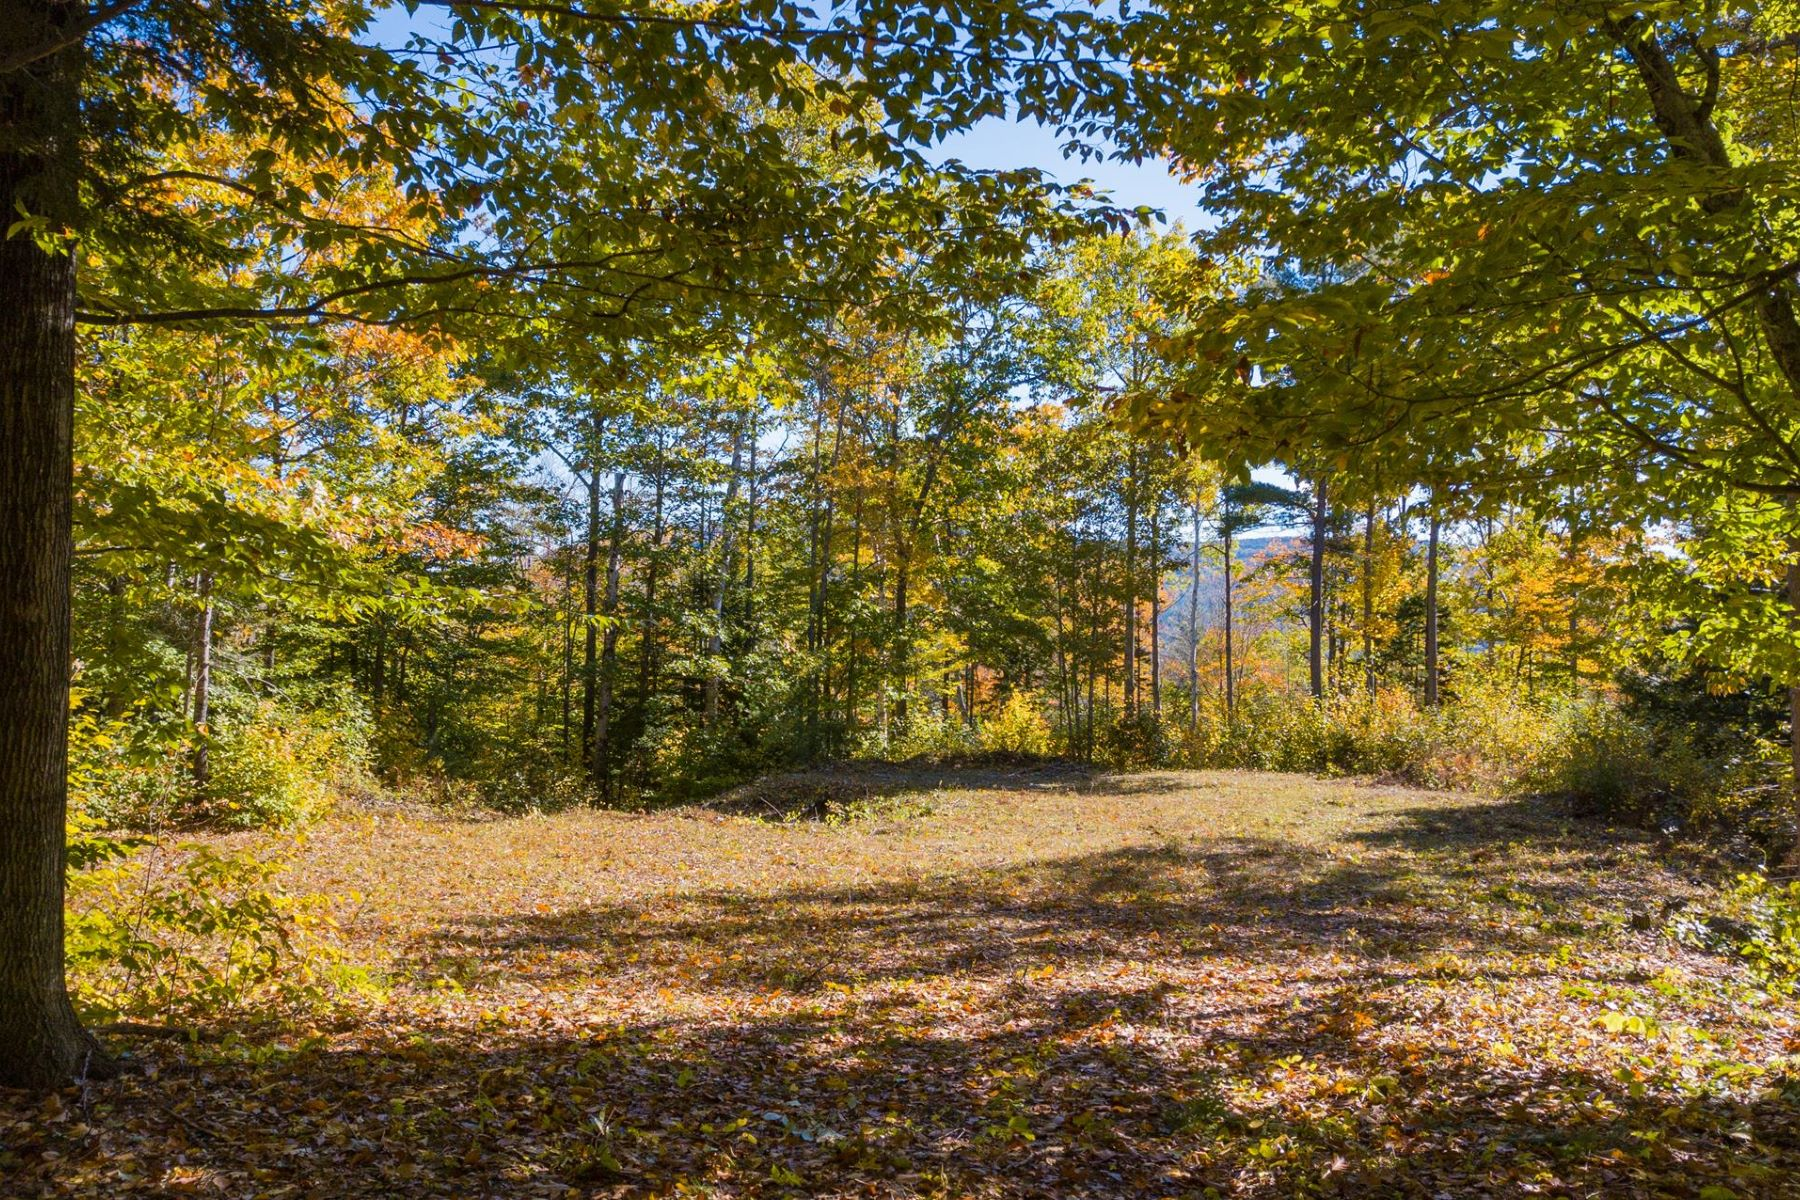 Land for Sale at Private 5.3 acre Lot with Views and Hiking Trails 0 North Wilmot Rd Wilmot, New Hampshire 03287 United States